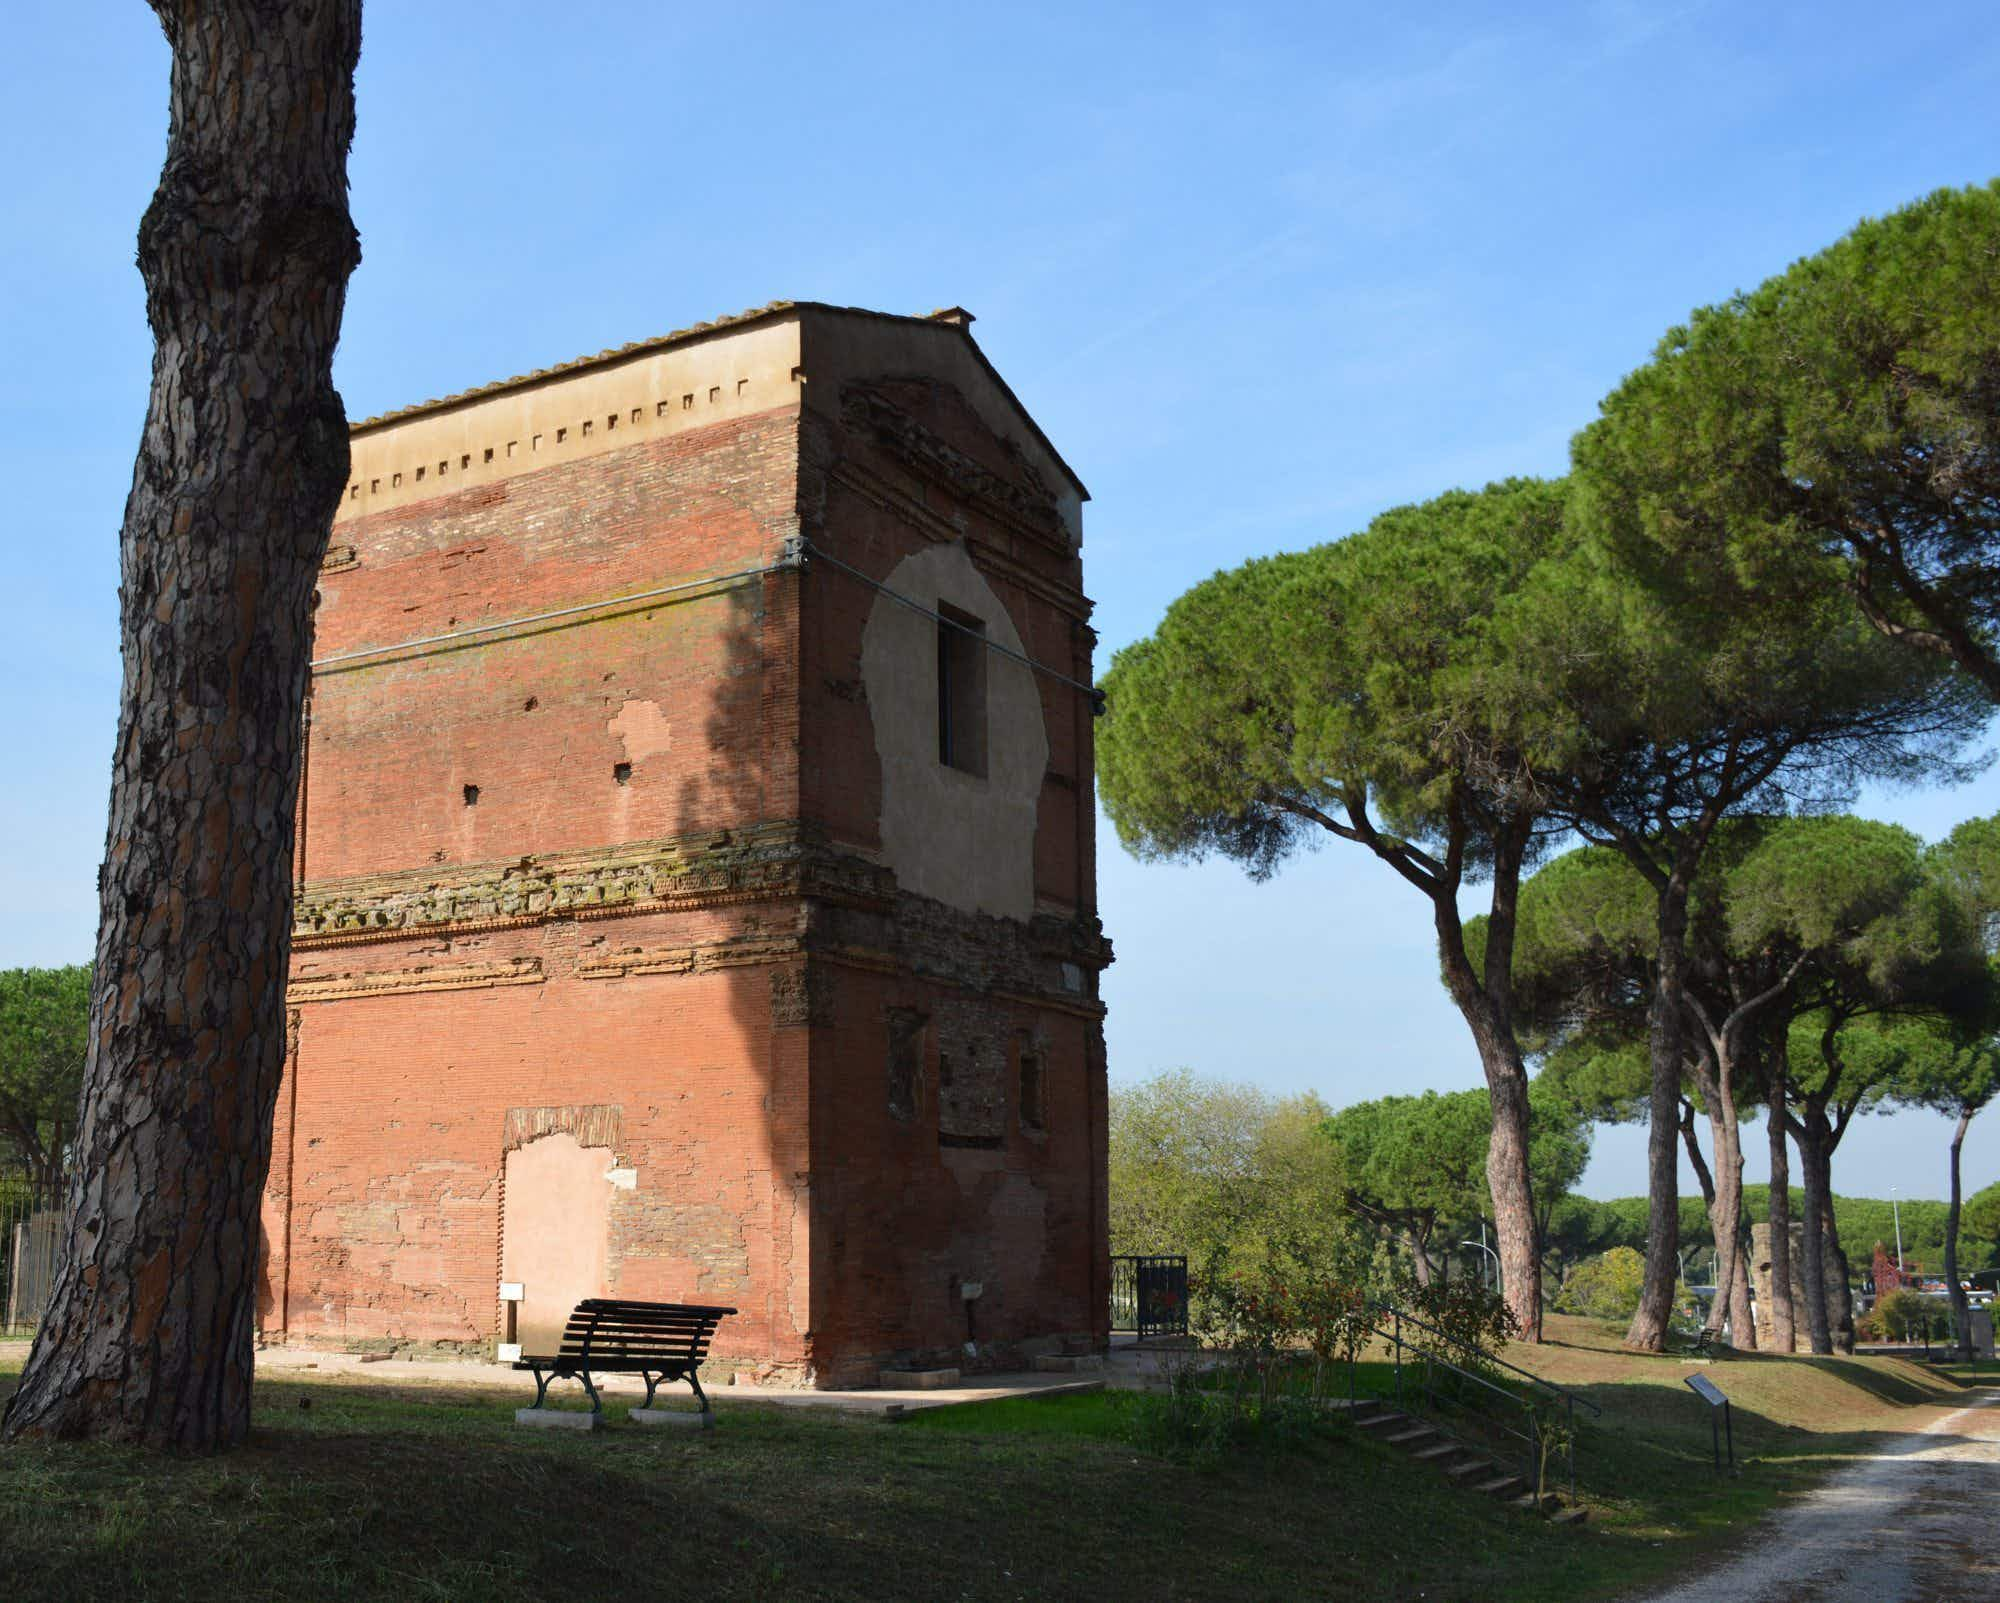 Be one of the first to see this unique ancient Roman tomb